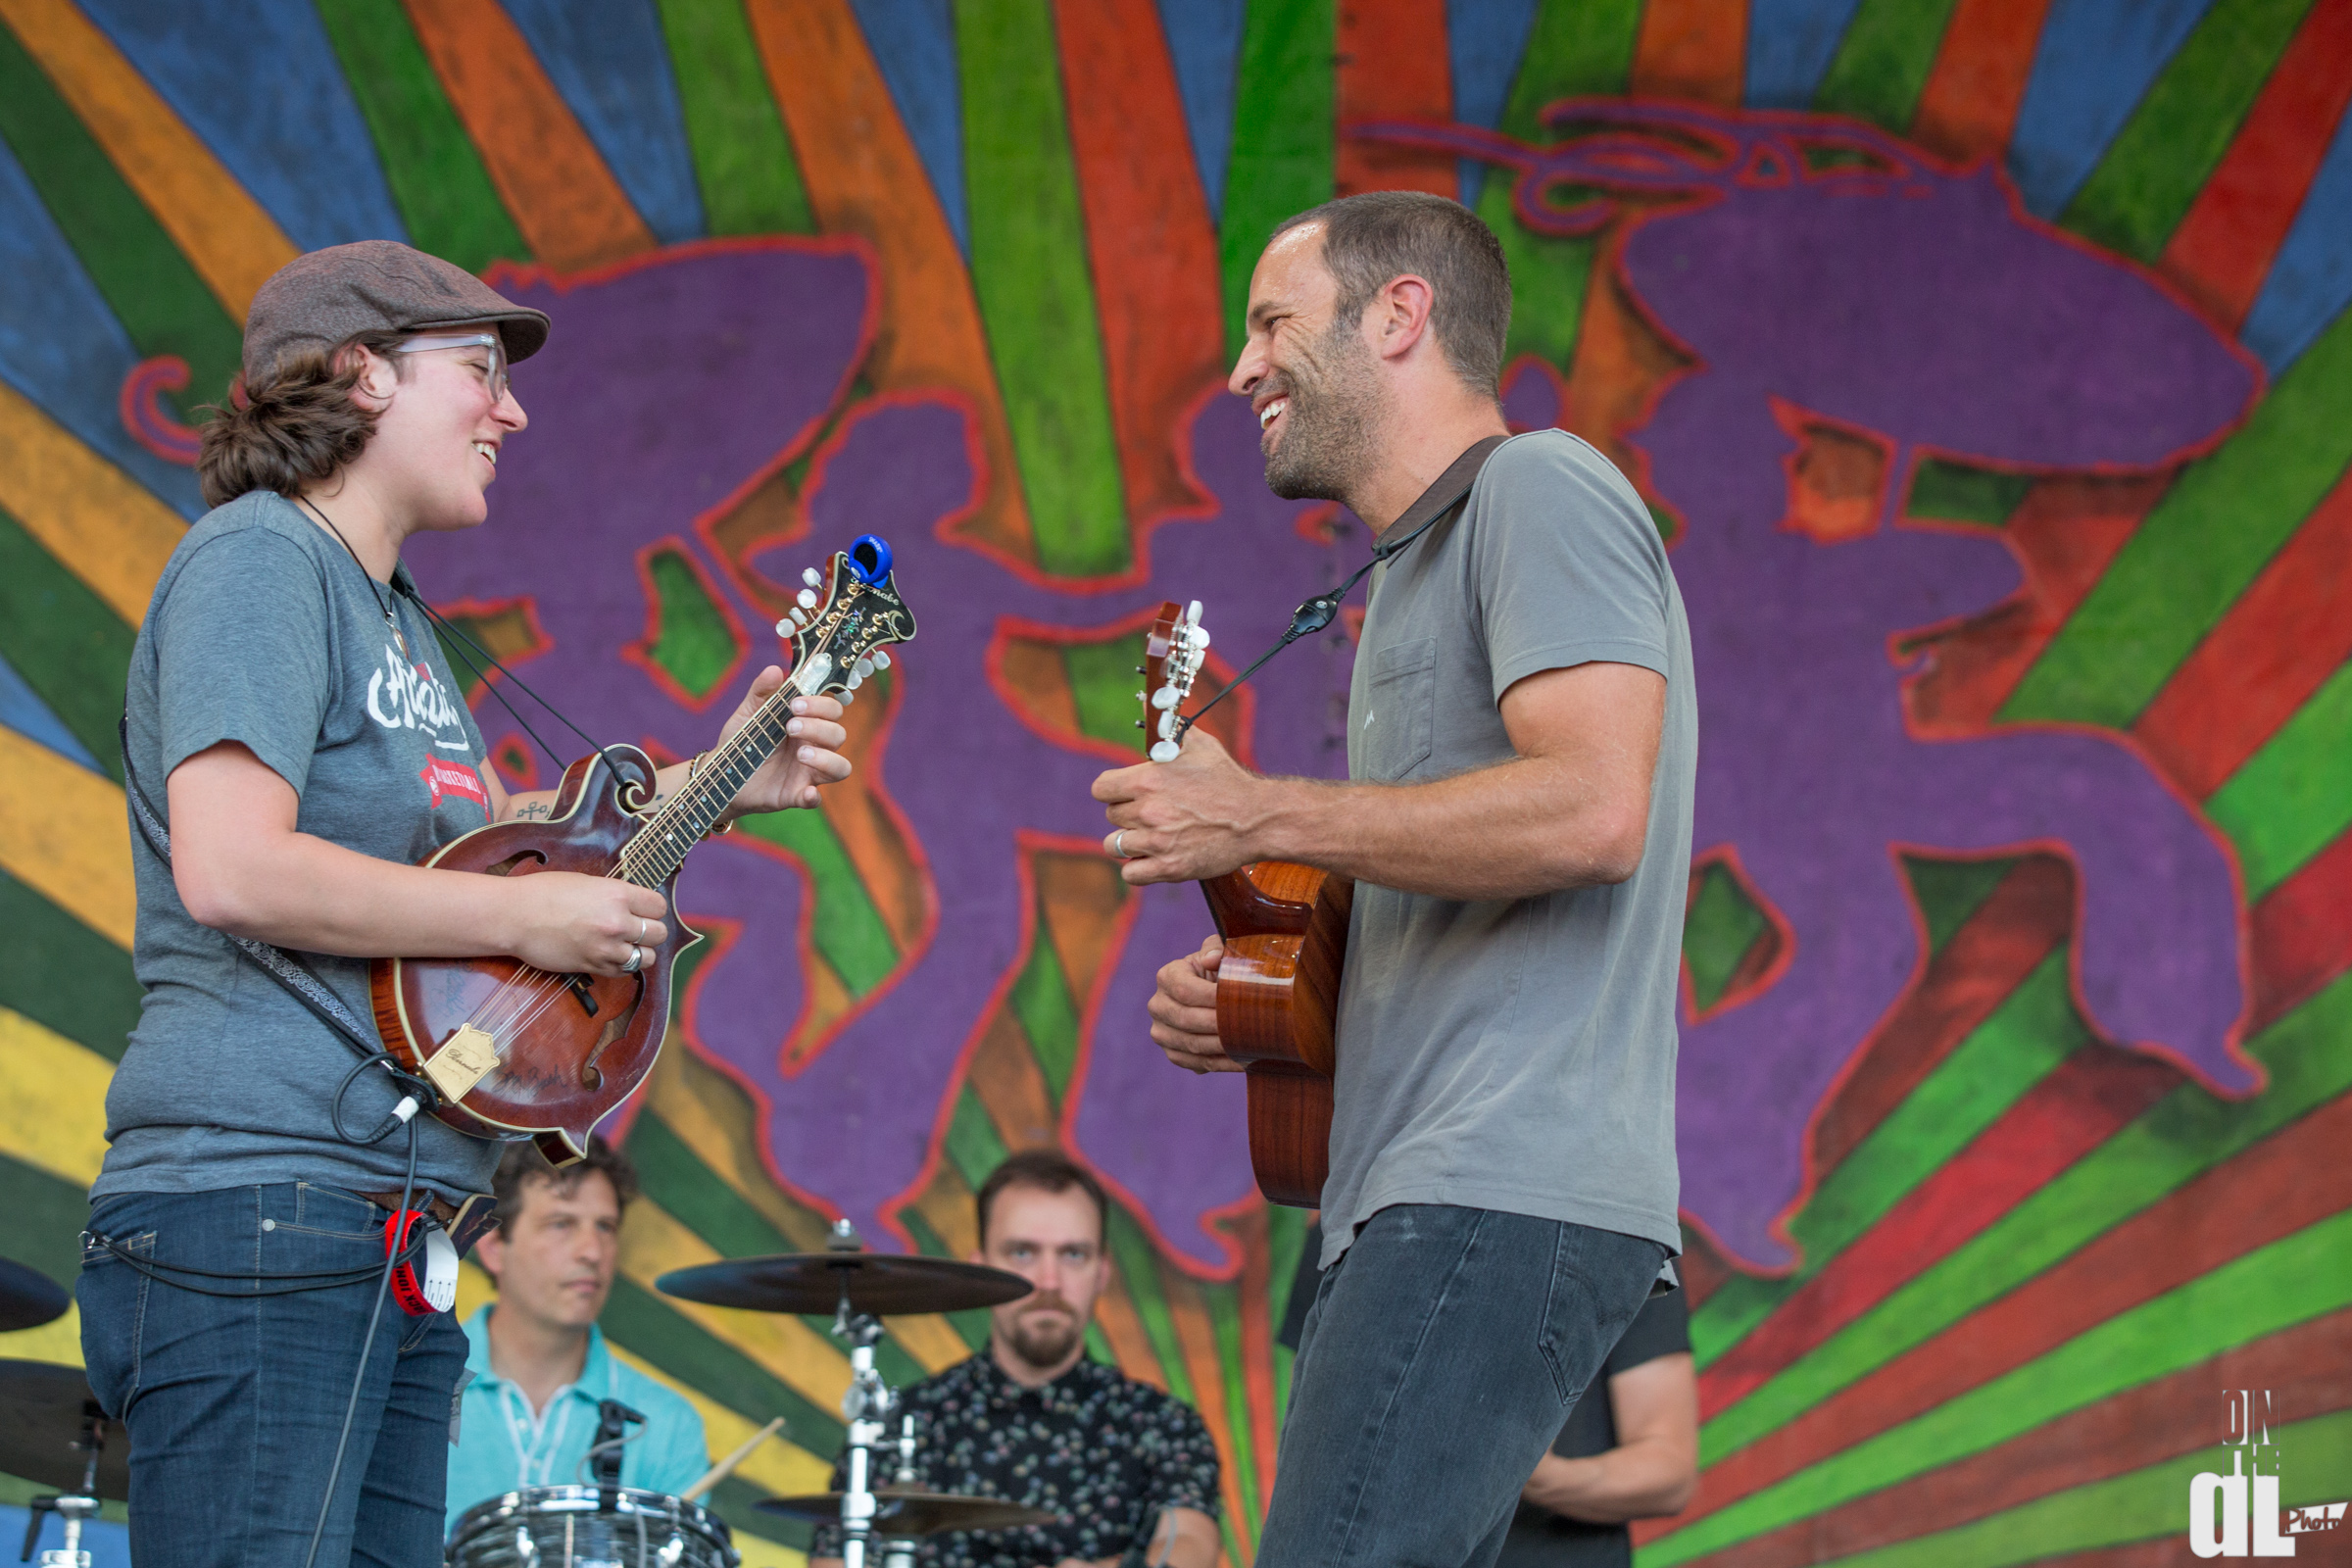 Fruition does a set with Jack Johnson @ NOLA Jazz Fest